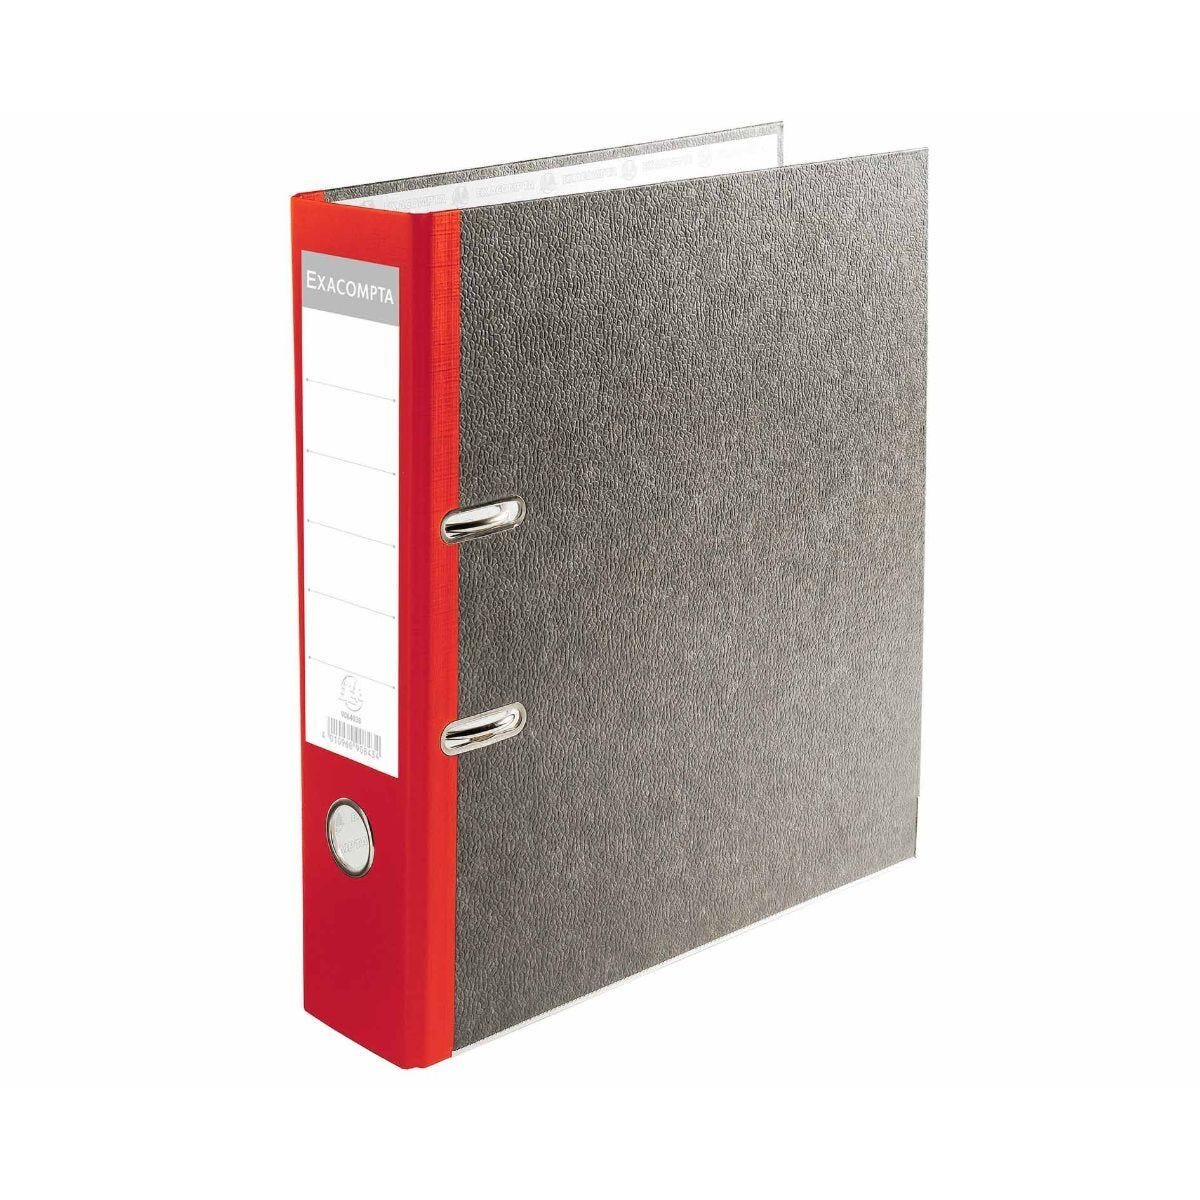 Exacompta PremTouch Lever Arch File A4 80mm Pack of 20 Red